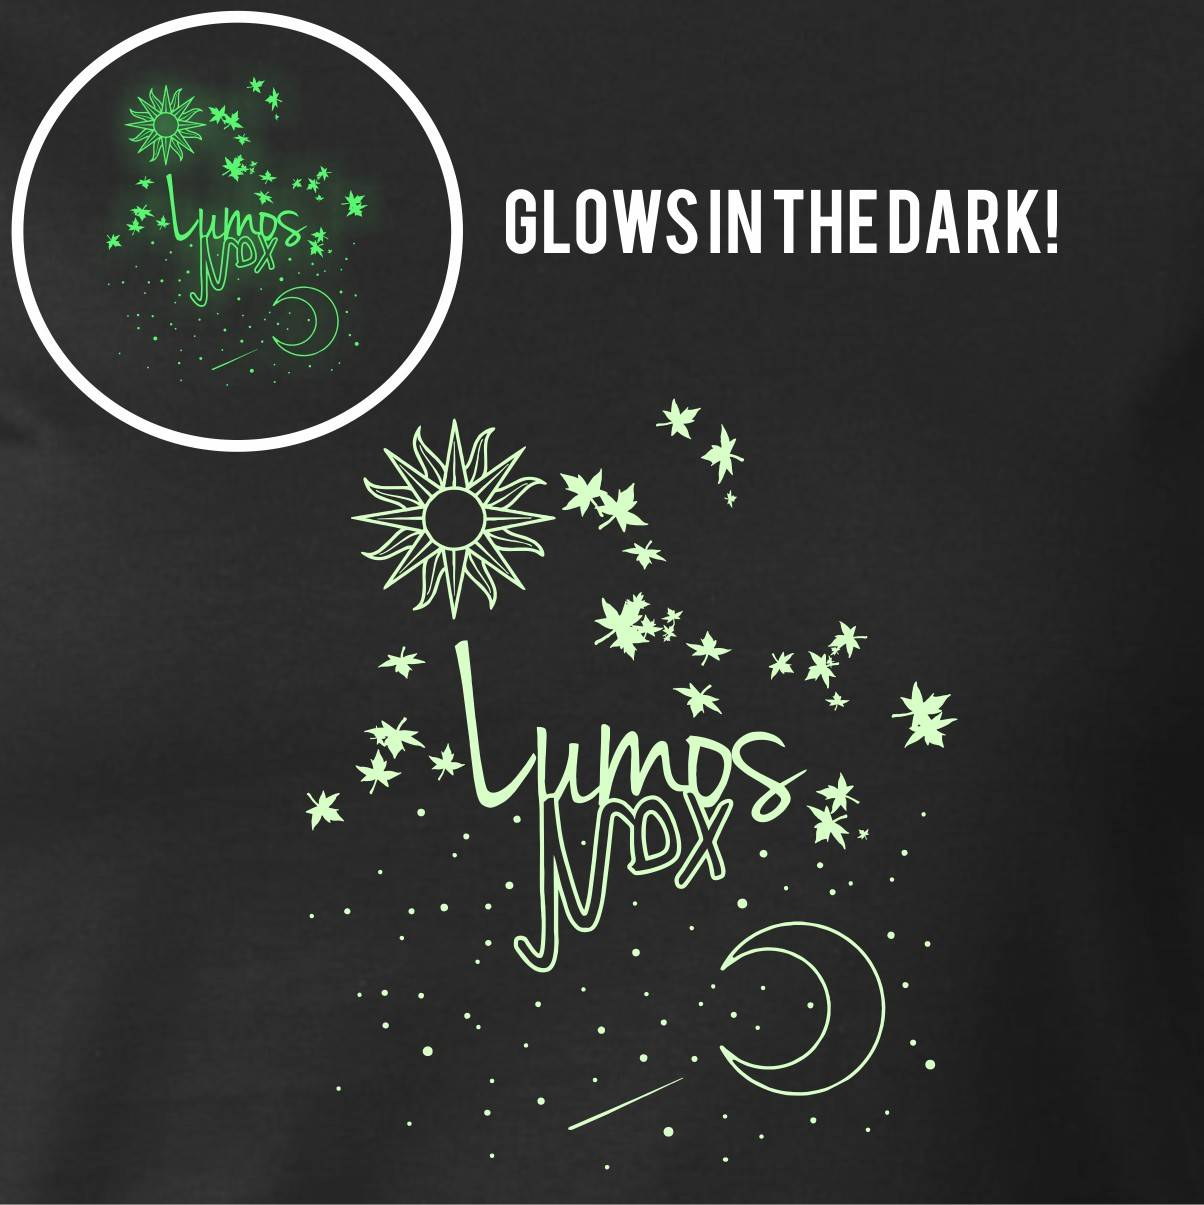 LUMOS NOX GLOW IN THE DARK